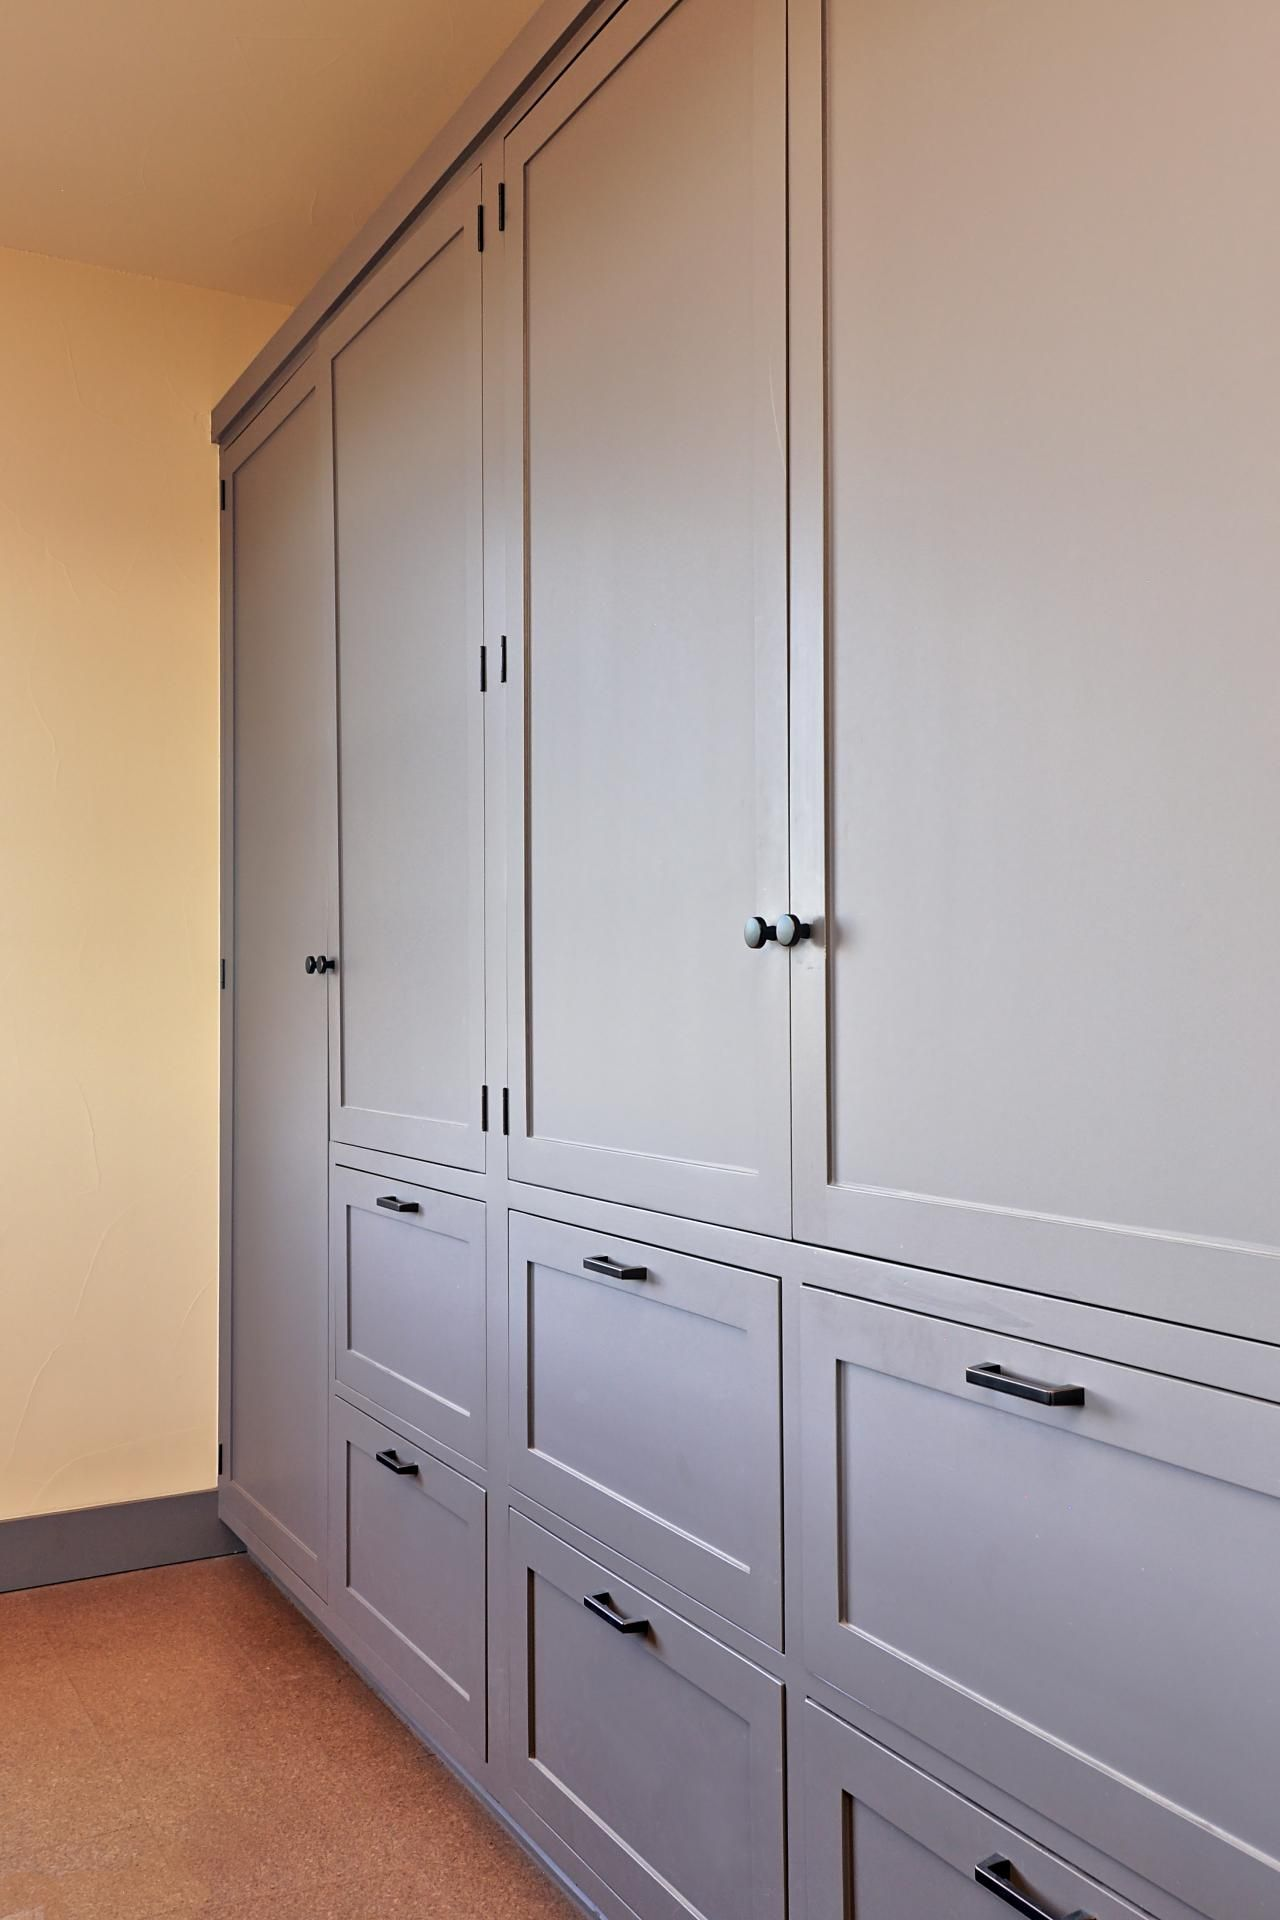 Built in bedroom storage cabinets hgtv bedroom ideas for Bedroom cabinet ideas